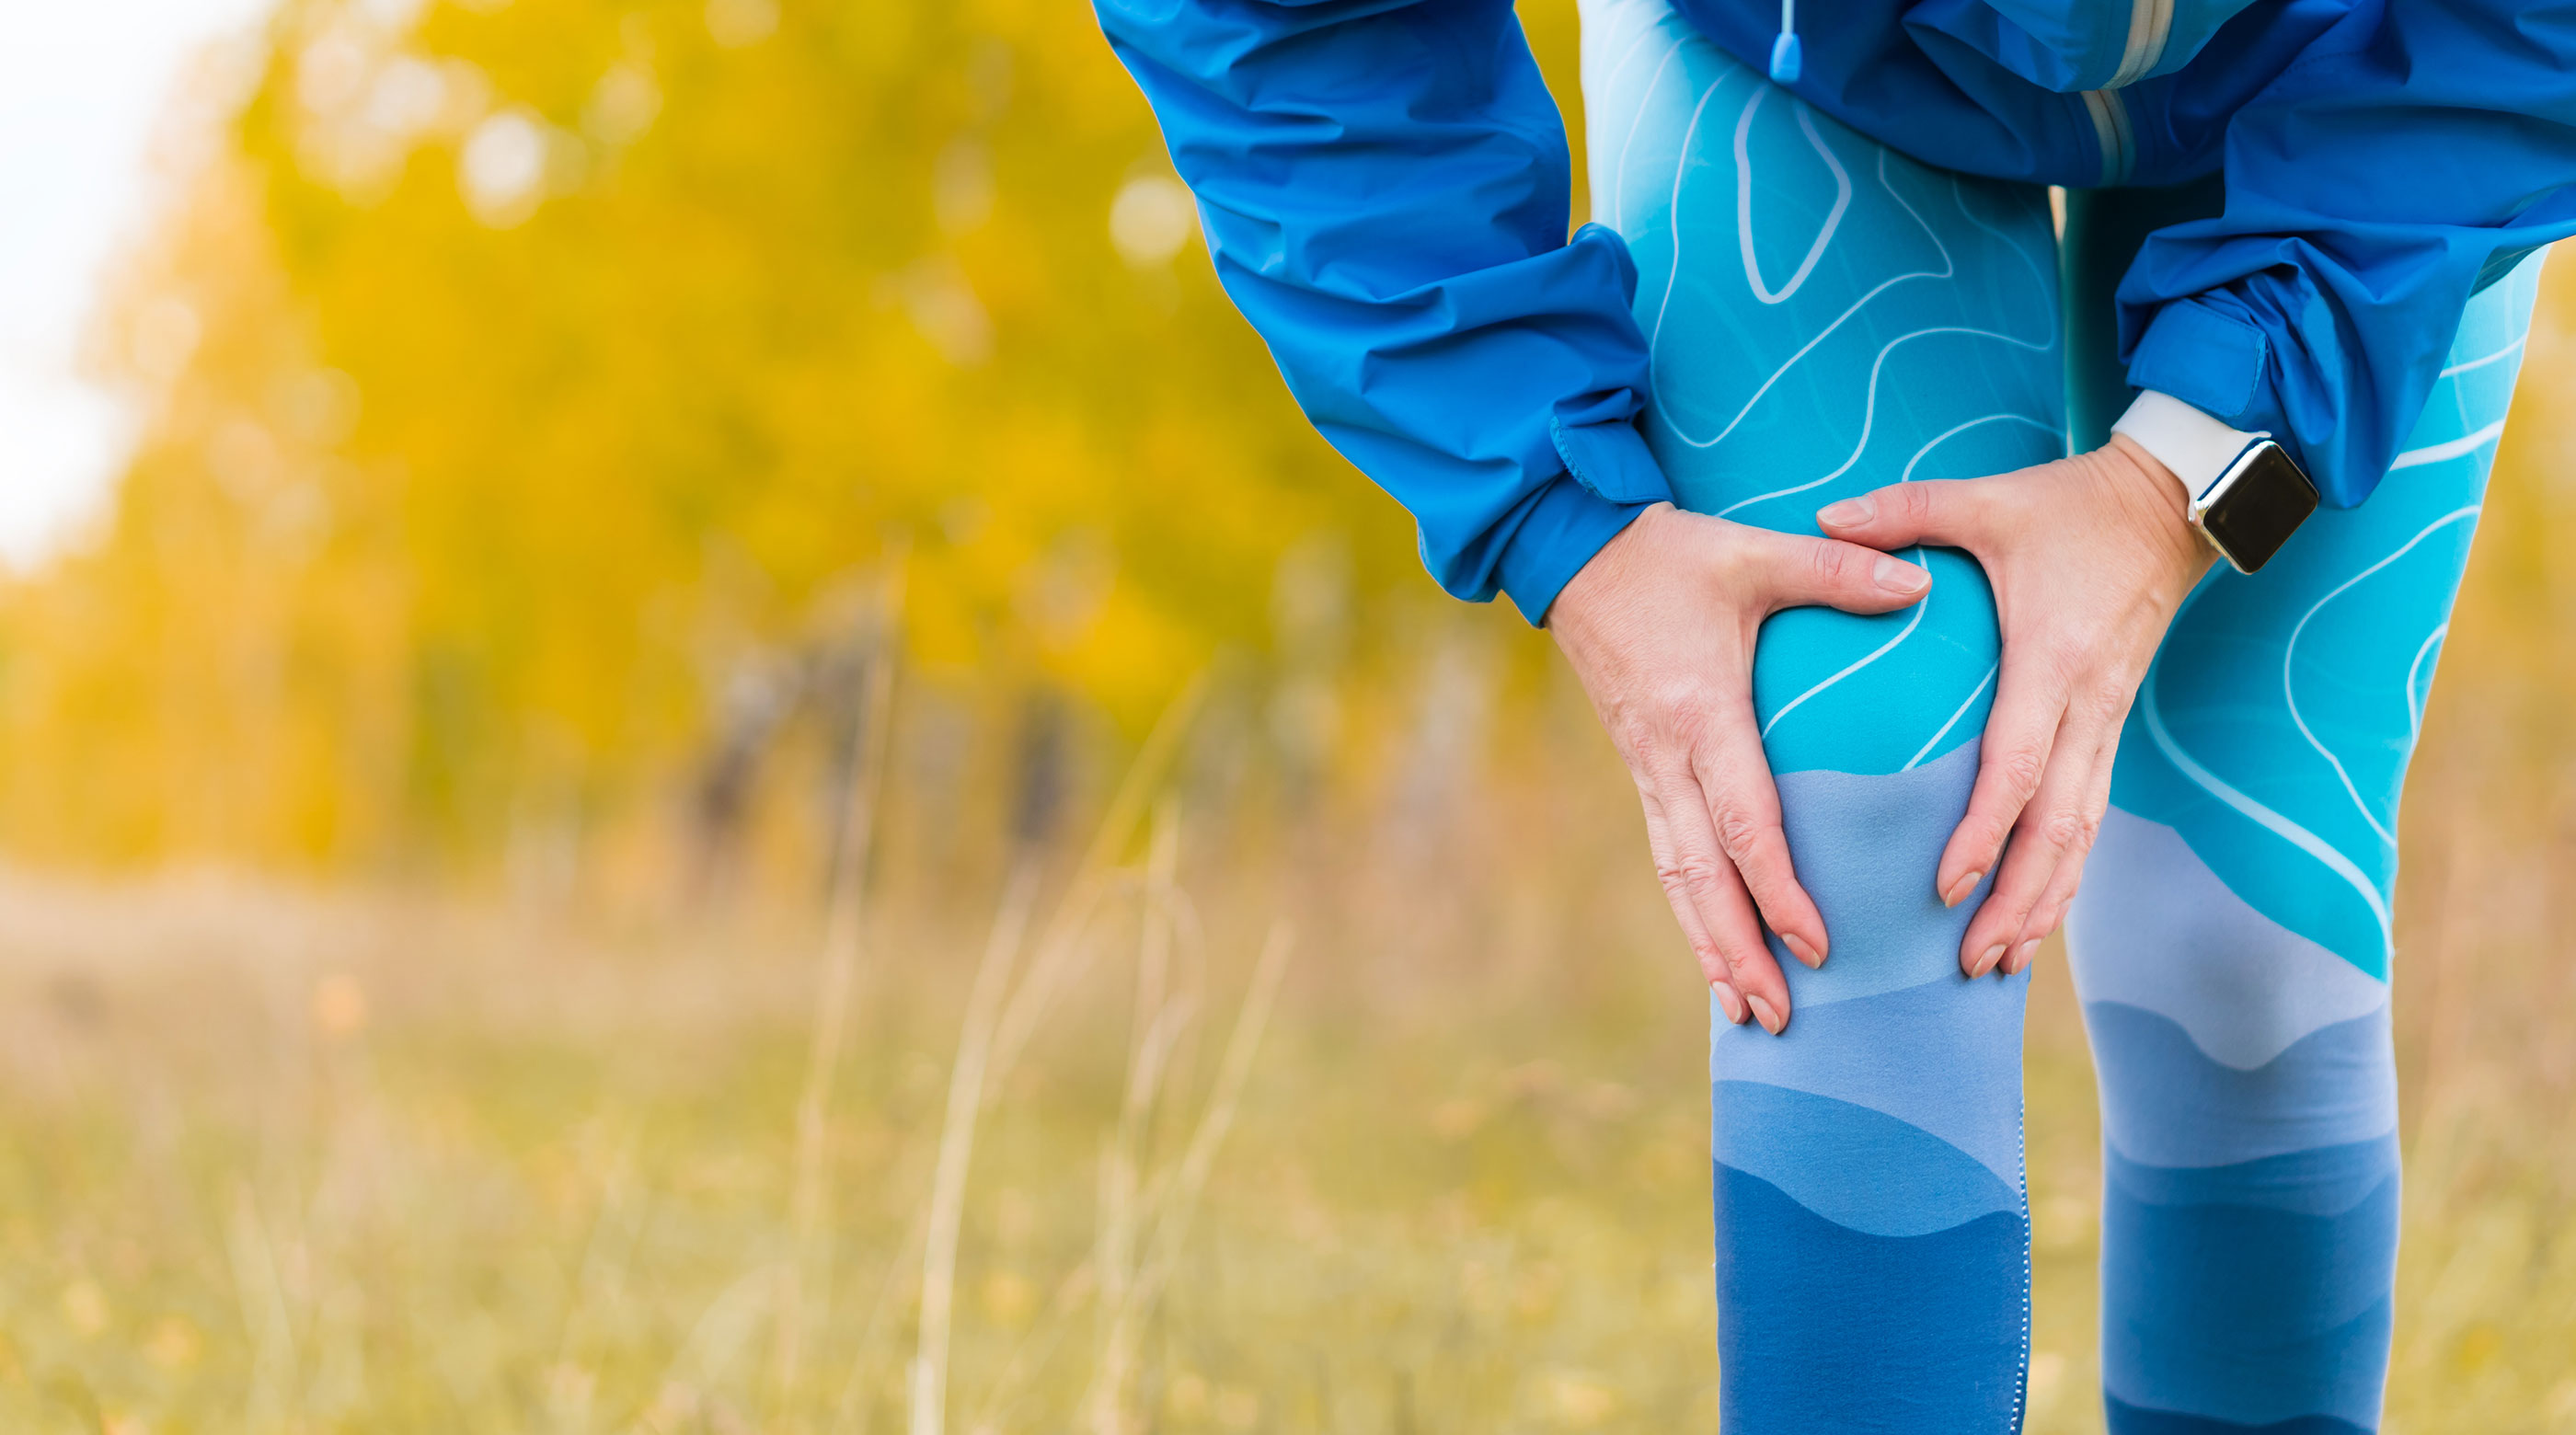 A Complete Approach to Anterior Knee Pain